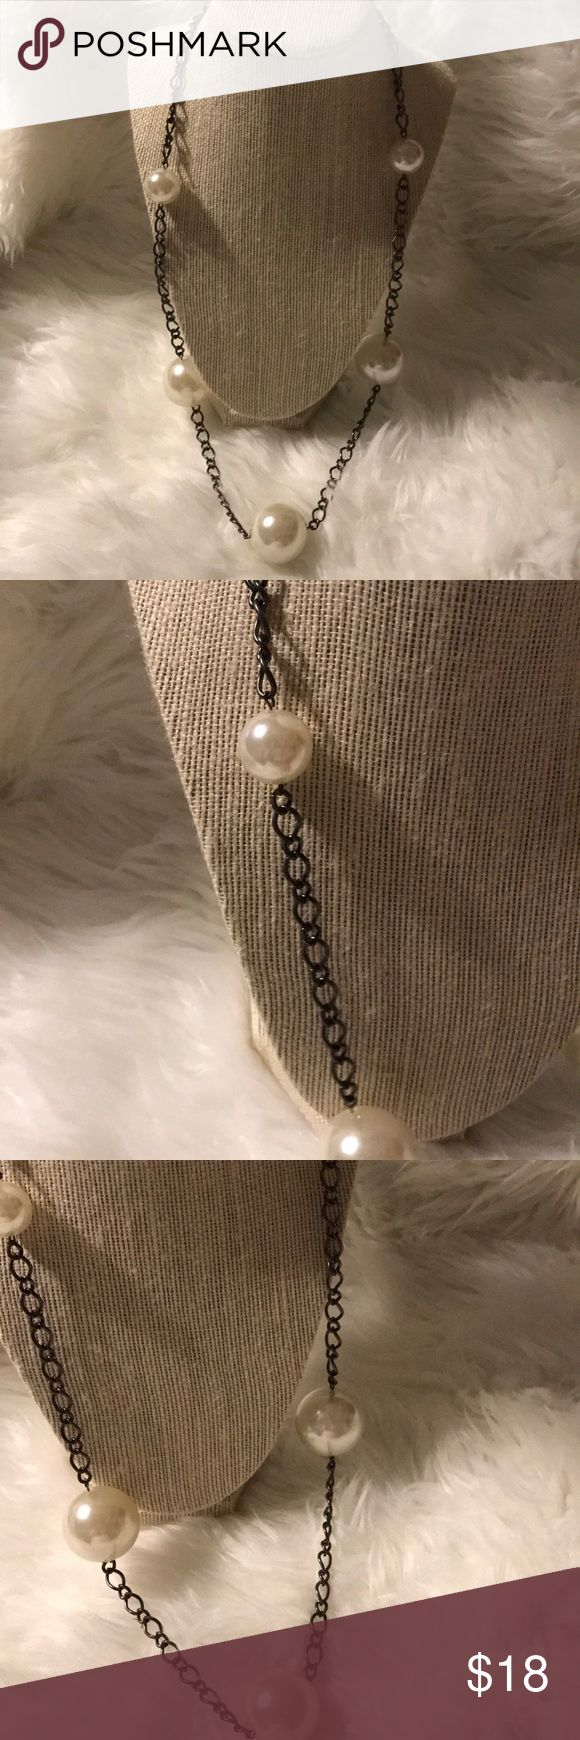 Pearl necklace Dark metal for chain. Huge pearls in varying sizes and various placement. 30 inches. New with tags. boutique Jewelry Necklaces